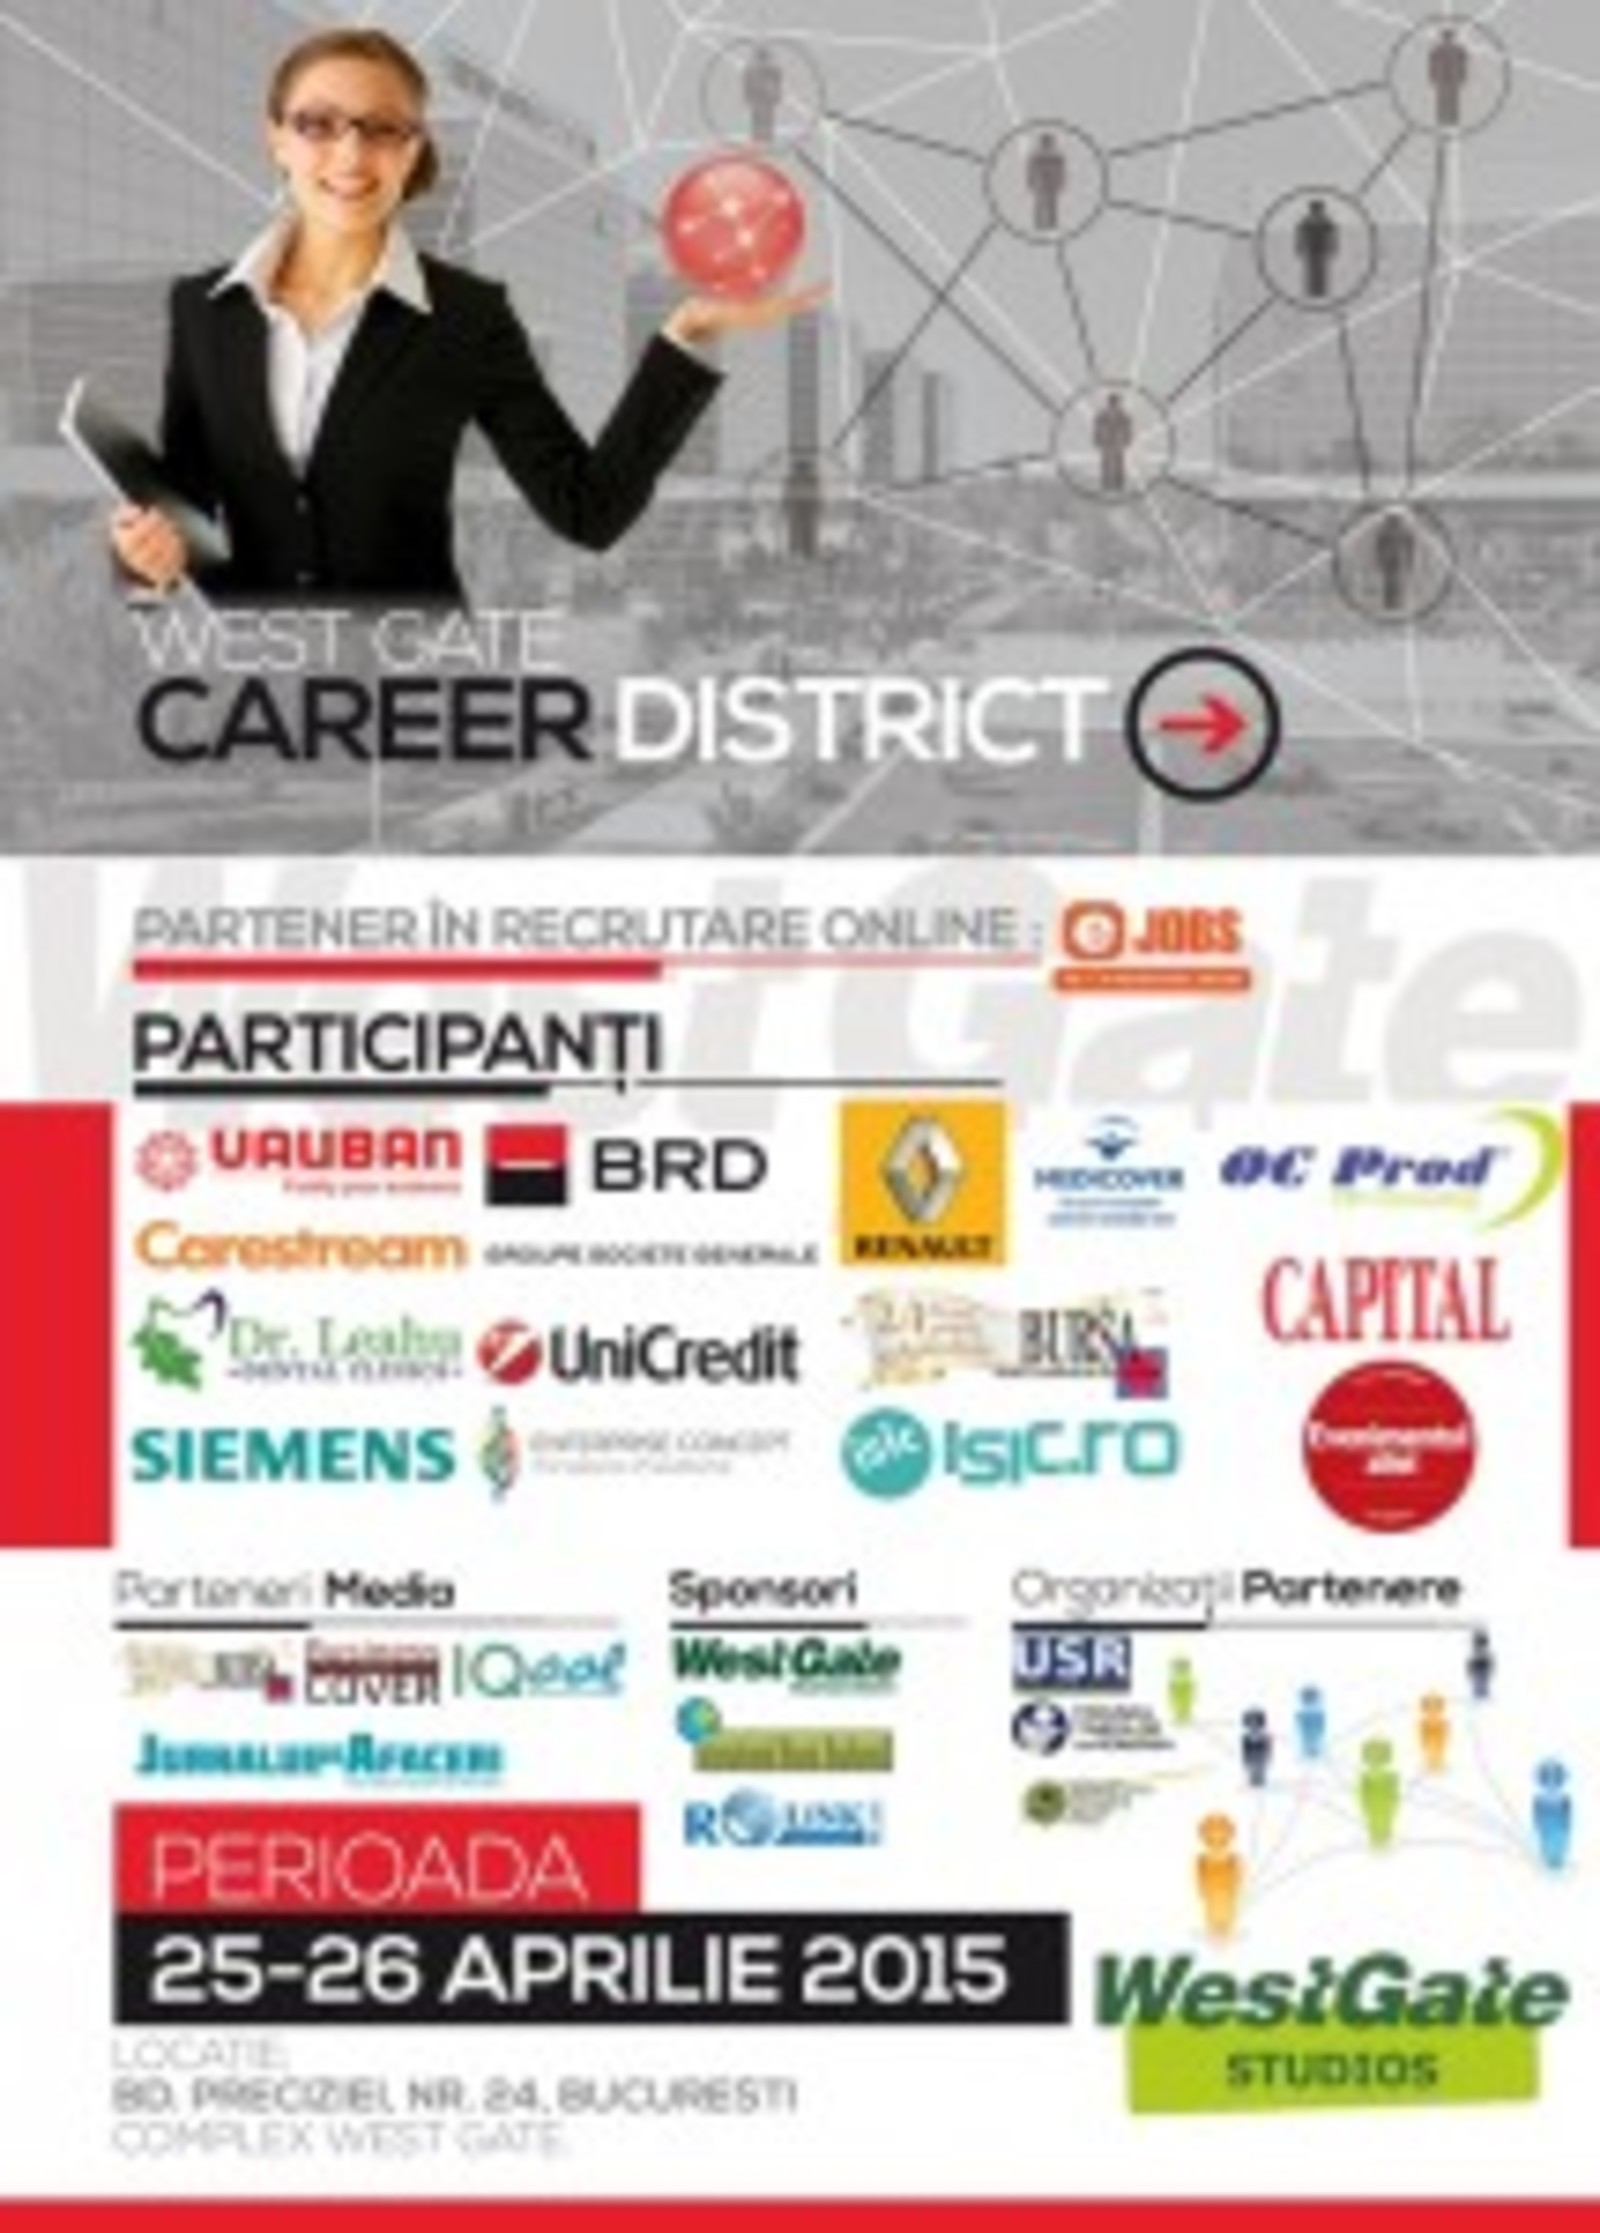 West Gate Career District website